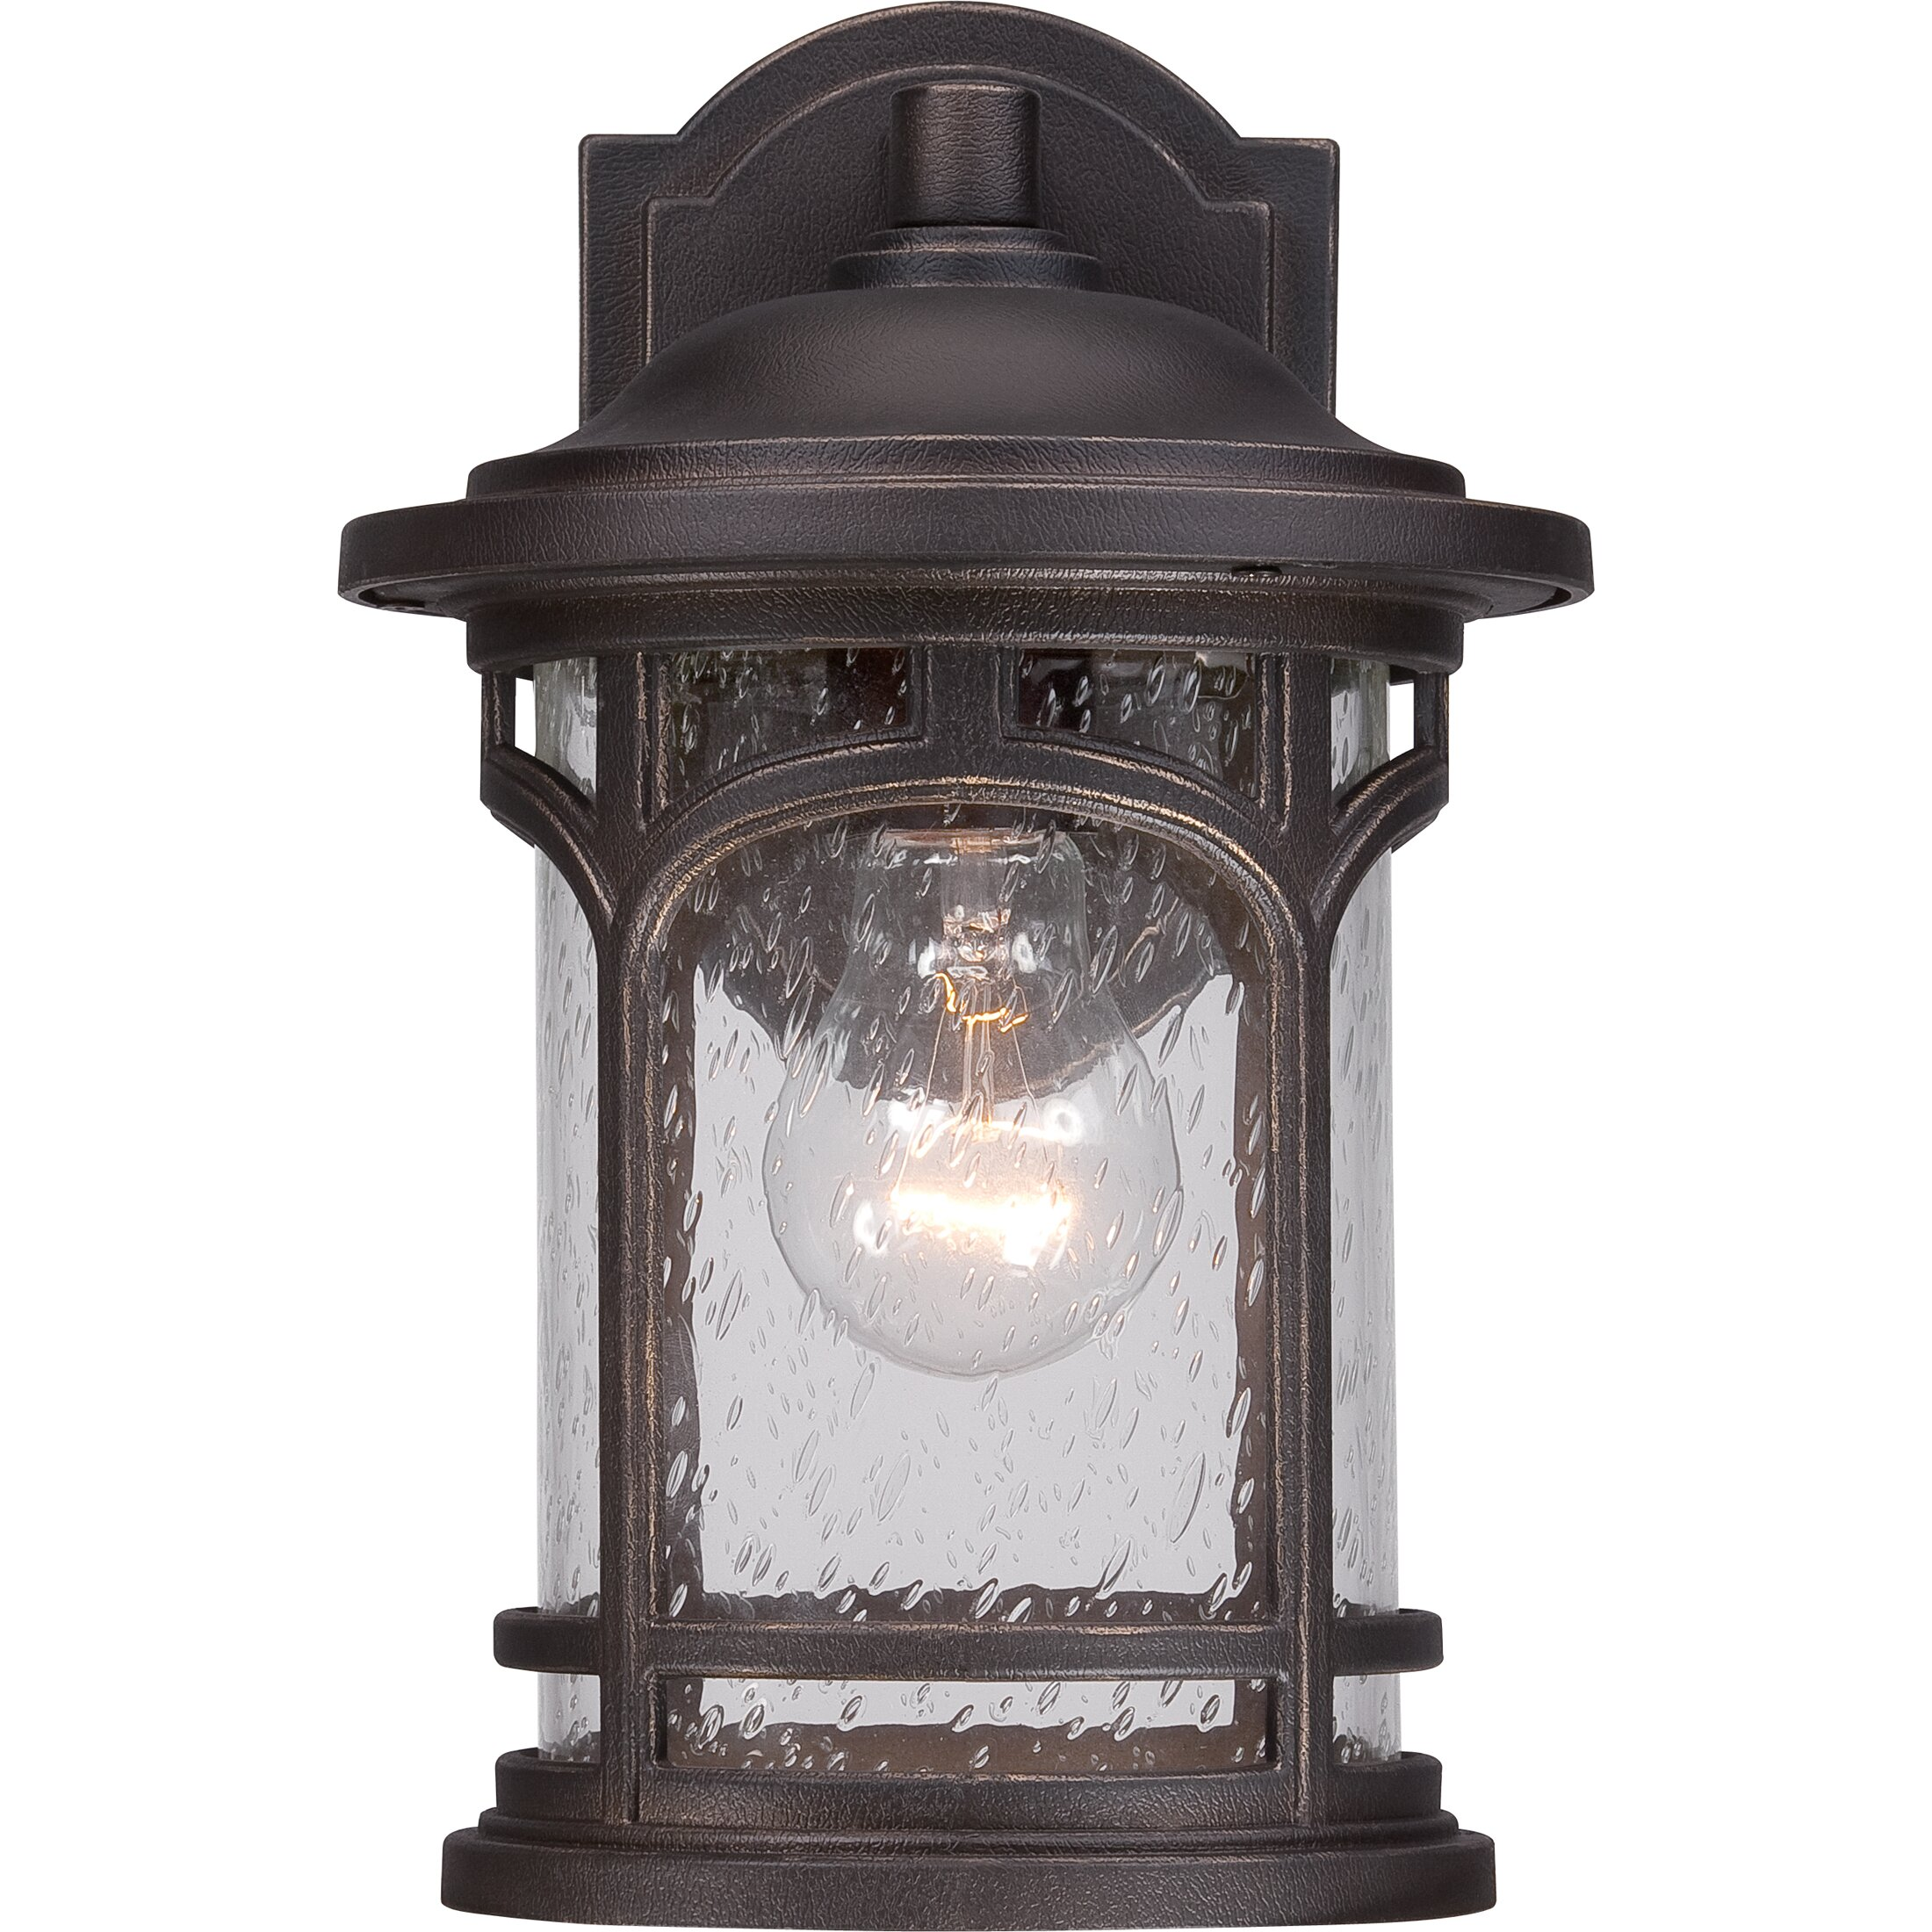 Quoizel Marblehead 1 Light Wall Lantern & Reviews